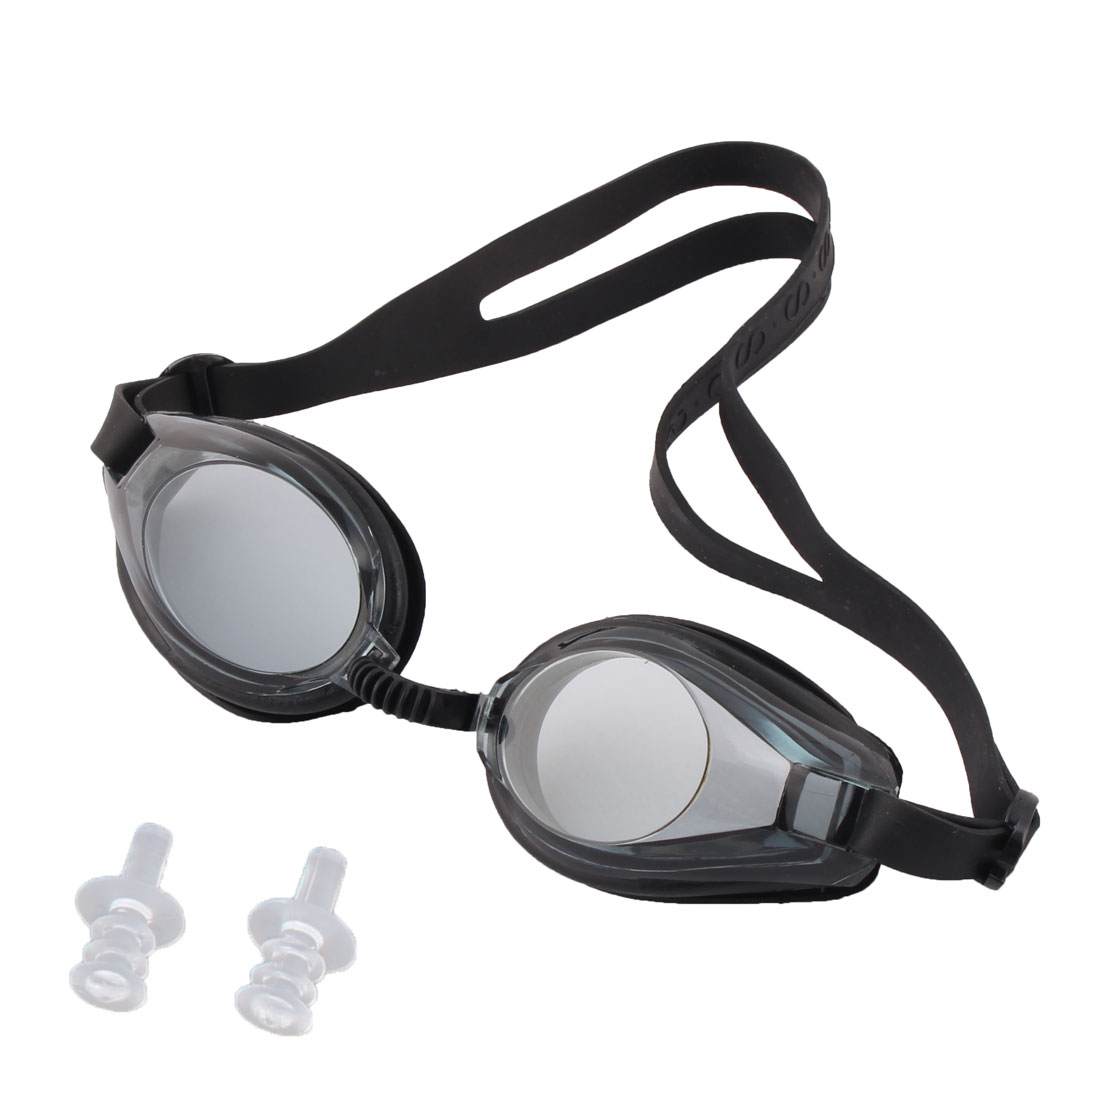 Unique Bargains Swimming Sports Aquafitness UV Protected Clear Swim Goggles w Ear Plugs For Kids by